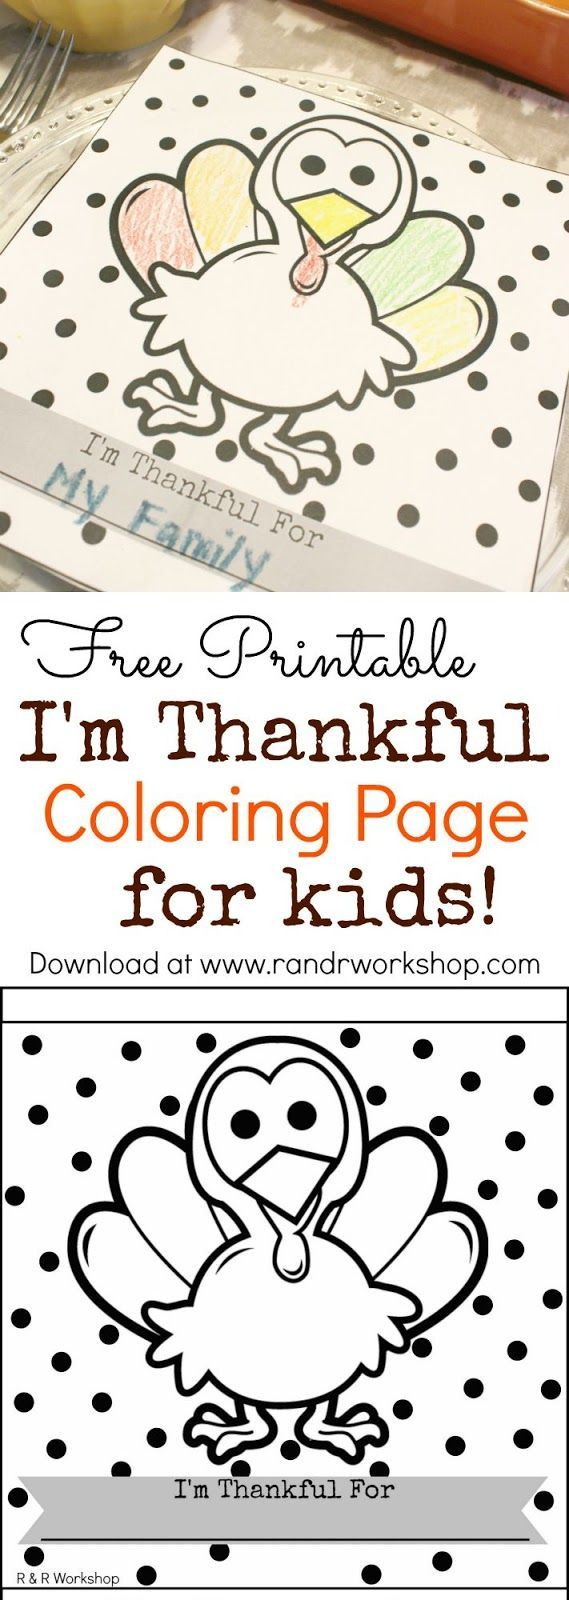 Best Being Thankful Coloring Pages 24 I um Thankful Coloring